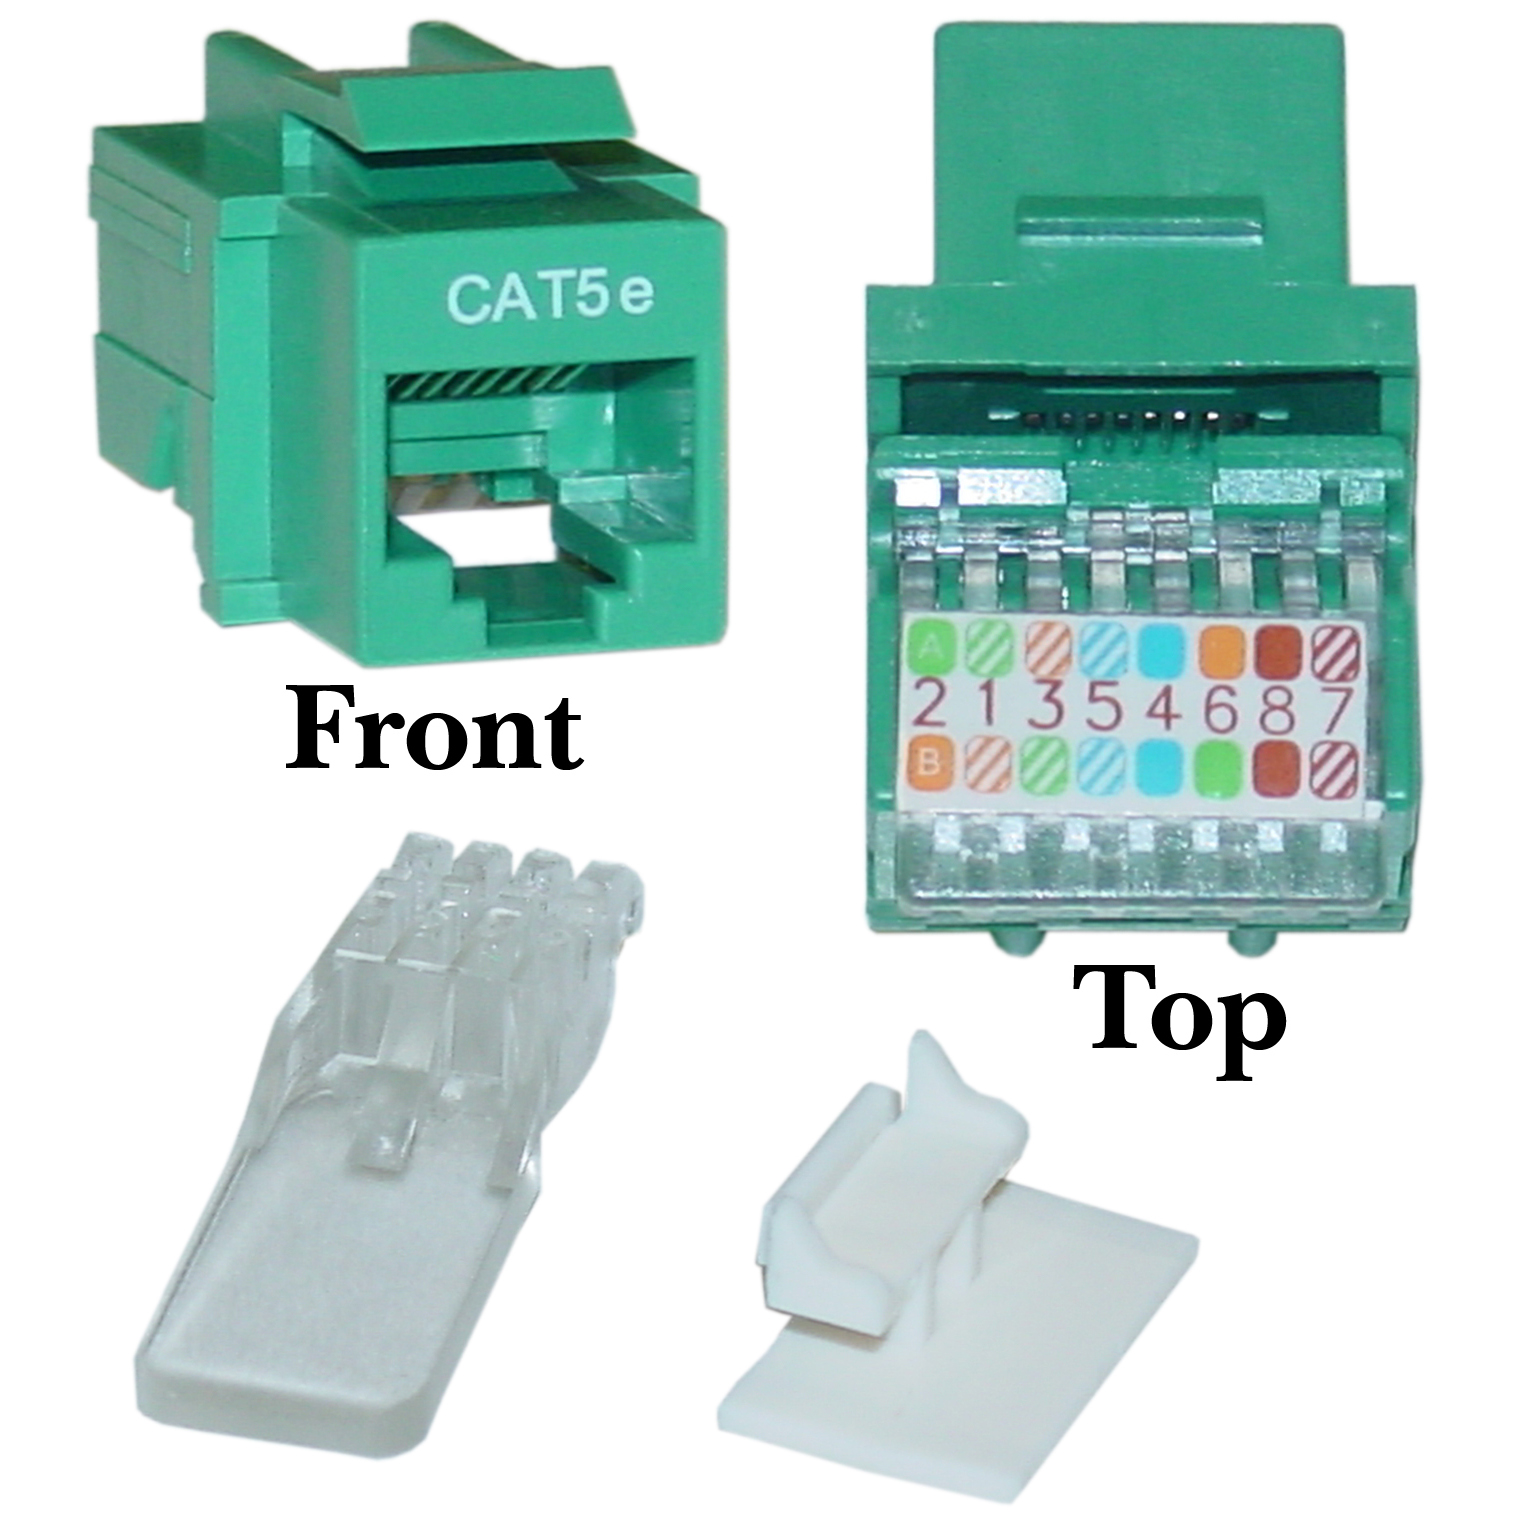 311 120gr green cat5e rj45 keystone jack toolless cablewholesale keystone wiring diagrams at bayanpartner.co